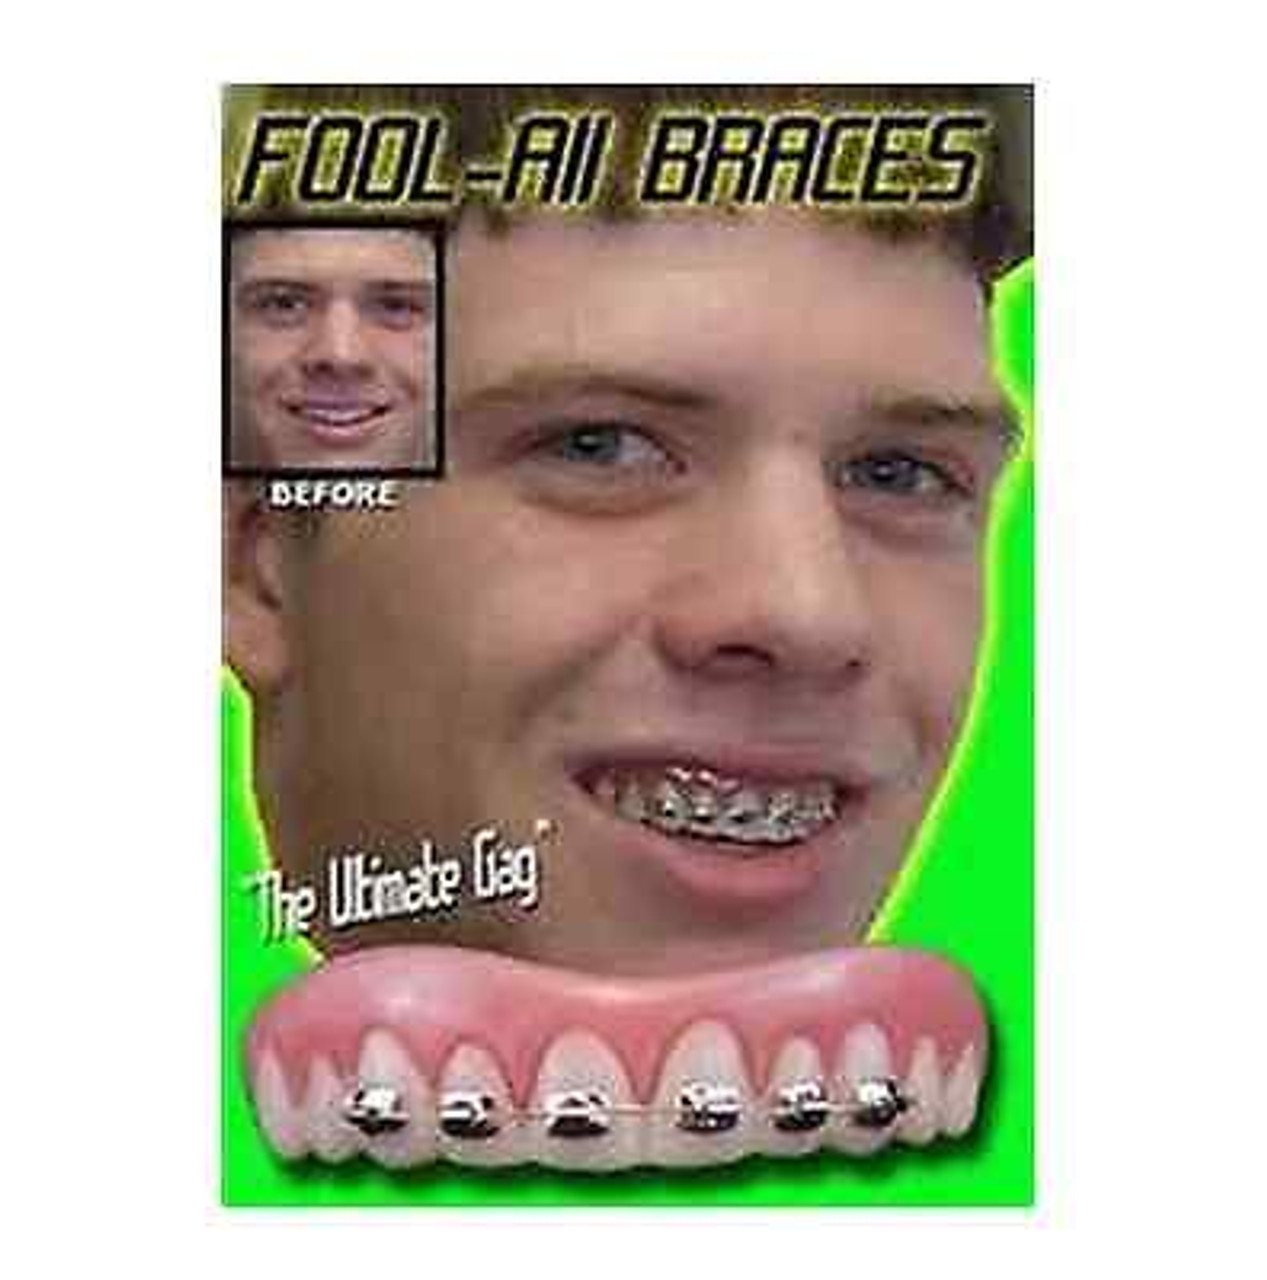 One Size, Small Billy Bob Instant Smile Fake Teeth